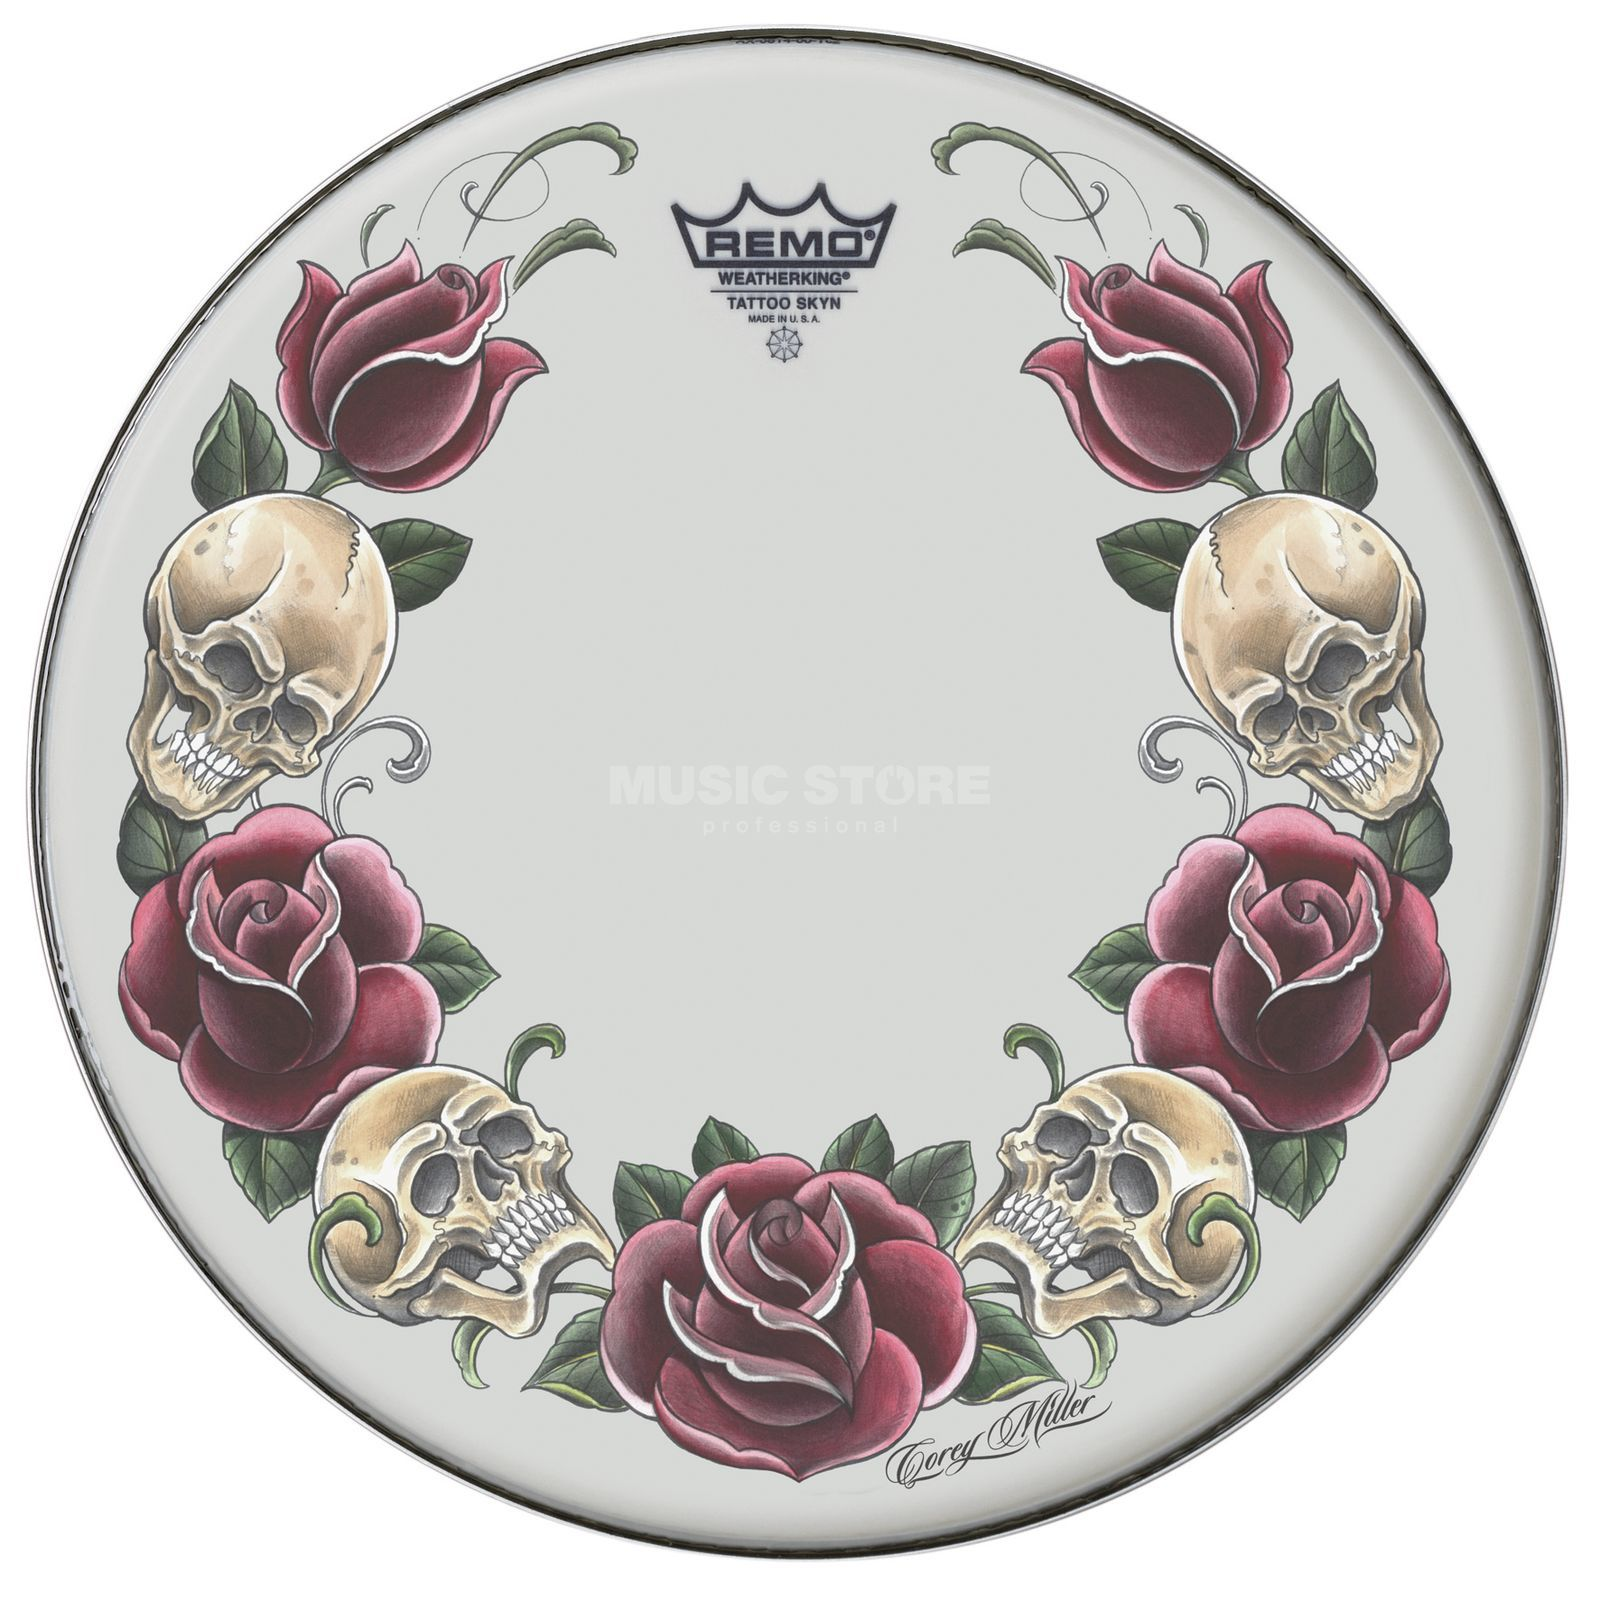 "Remo Tattoo Skyn 14"", Rock and Roses Immagine prodotto"